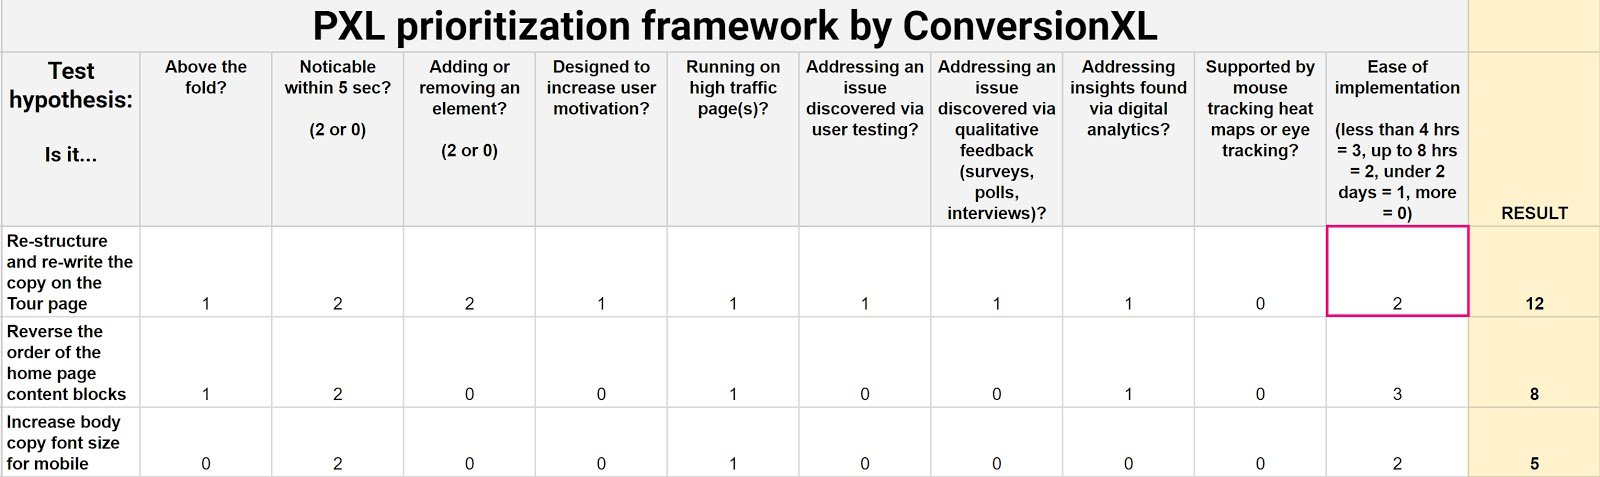 Learn to prioritize your tests via ConversionXL